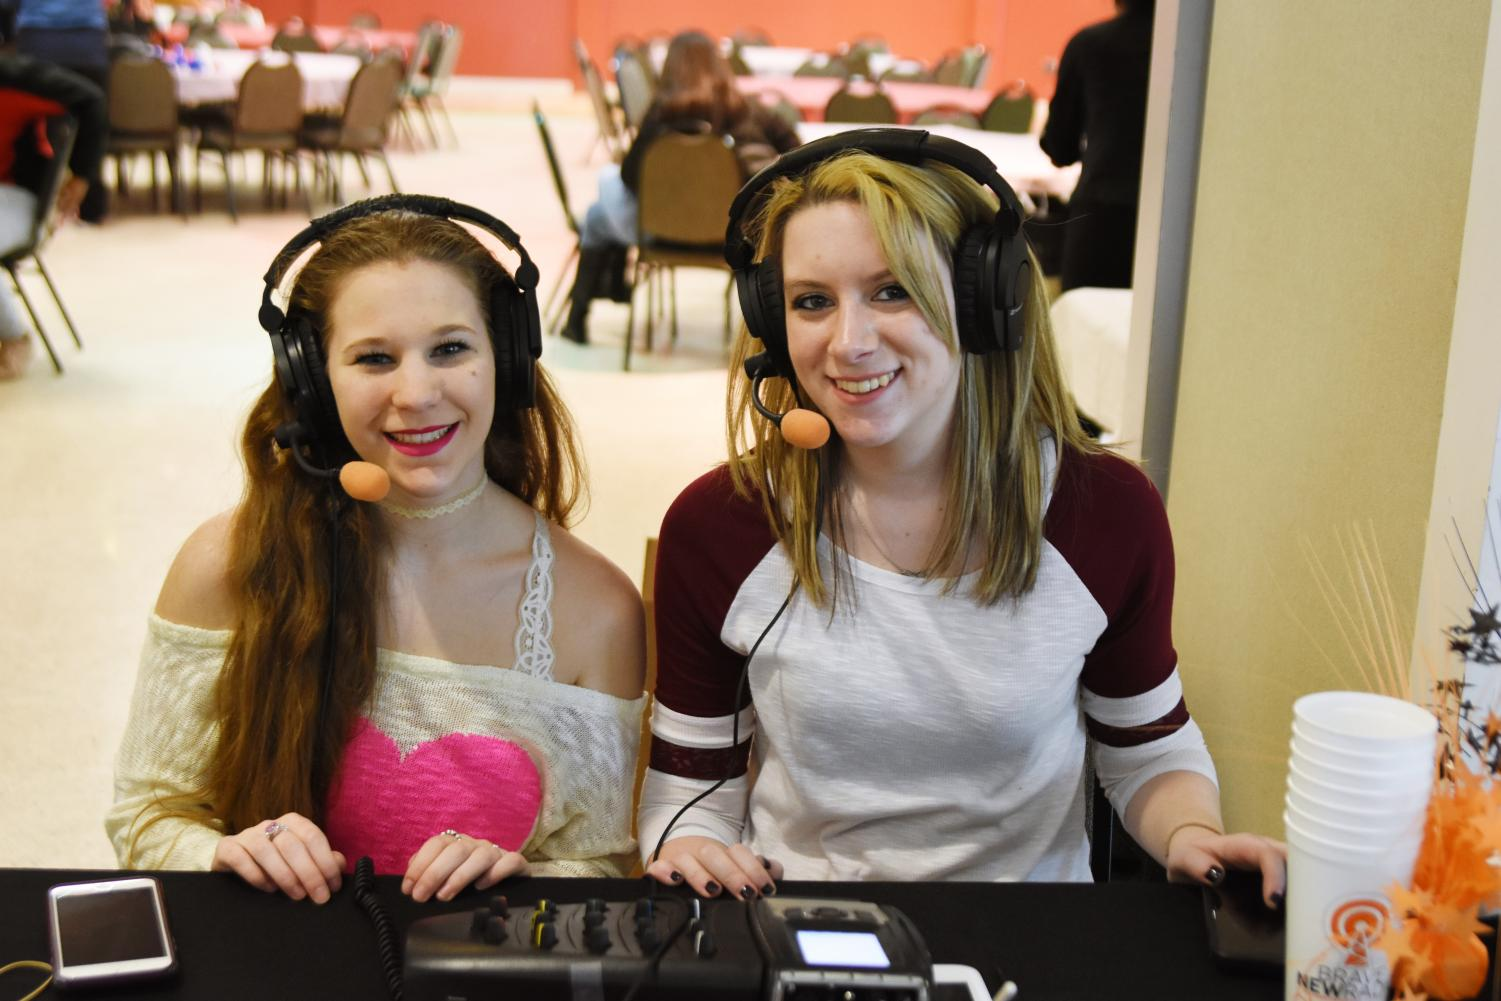 Erika (left) and Bree (right), hosts at Brave New Radio's Valentine's Day event.